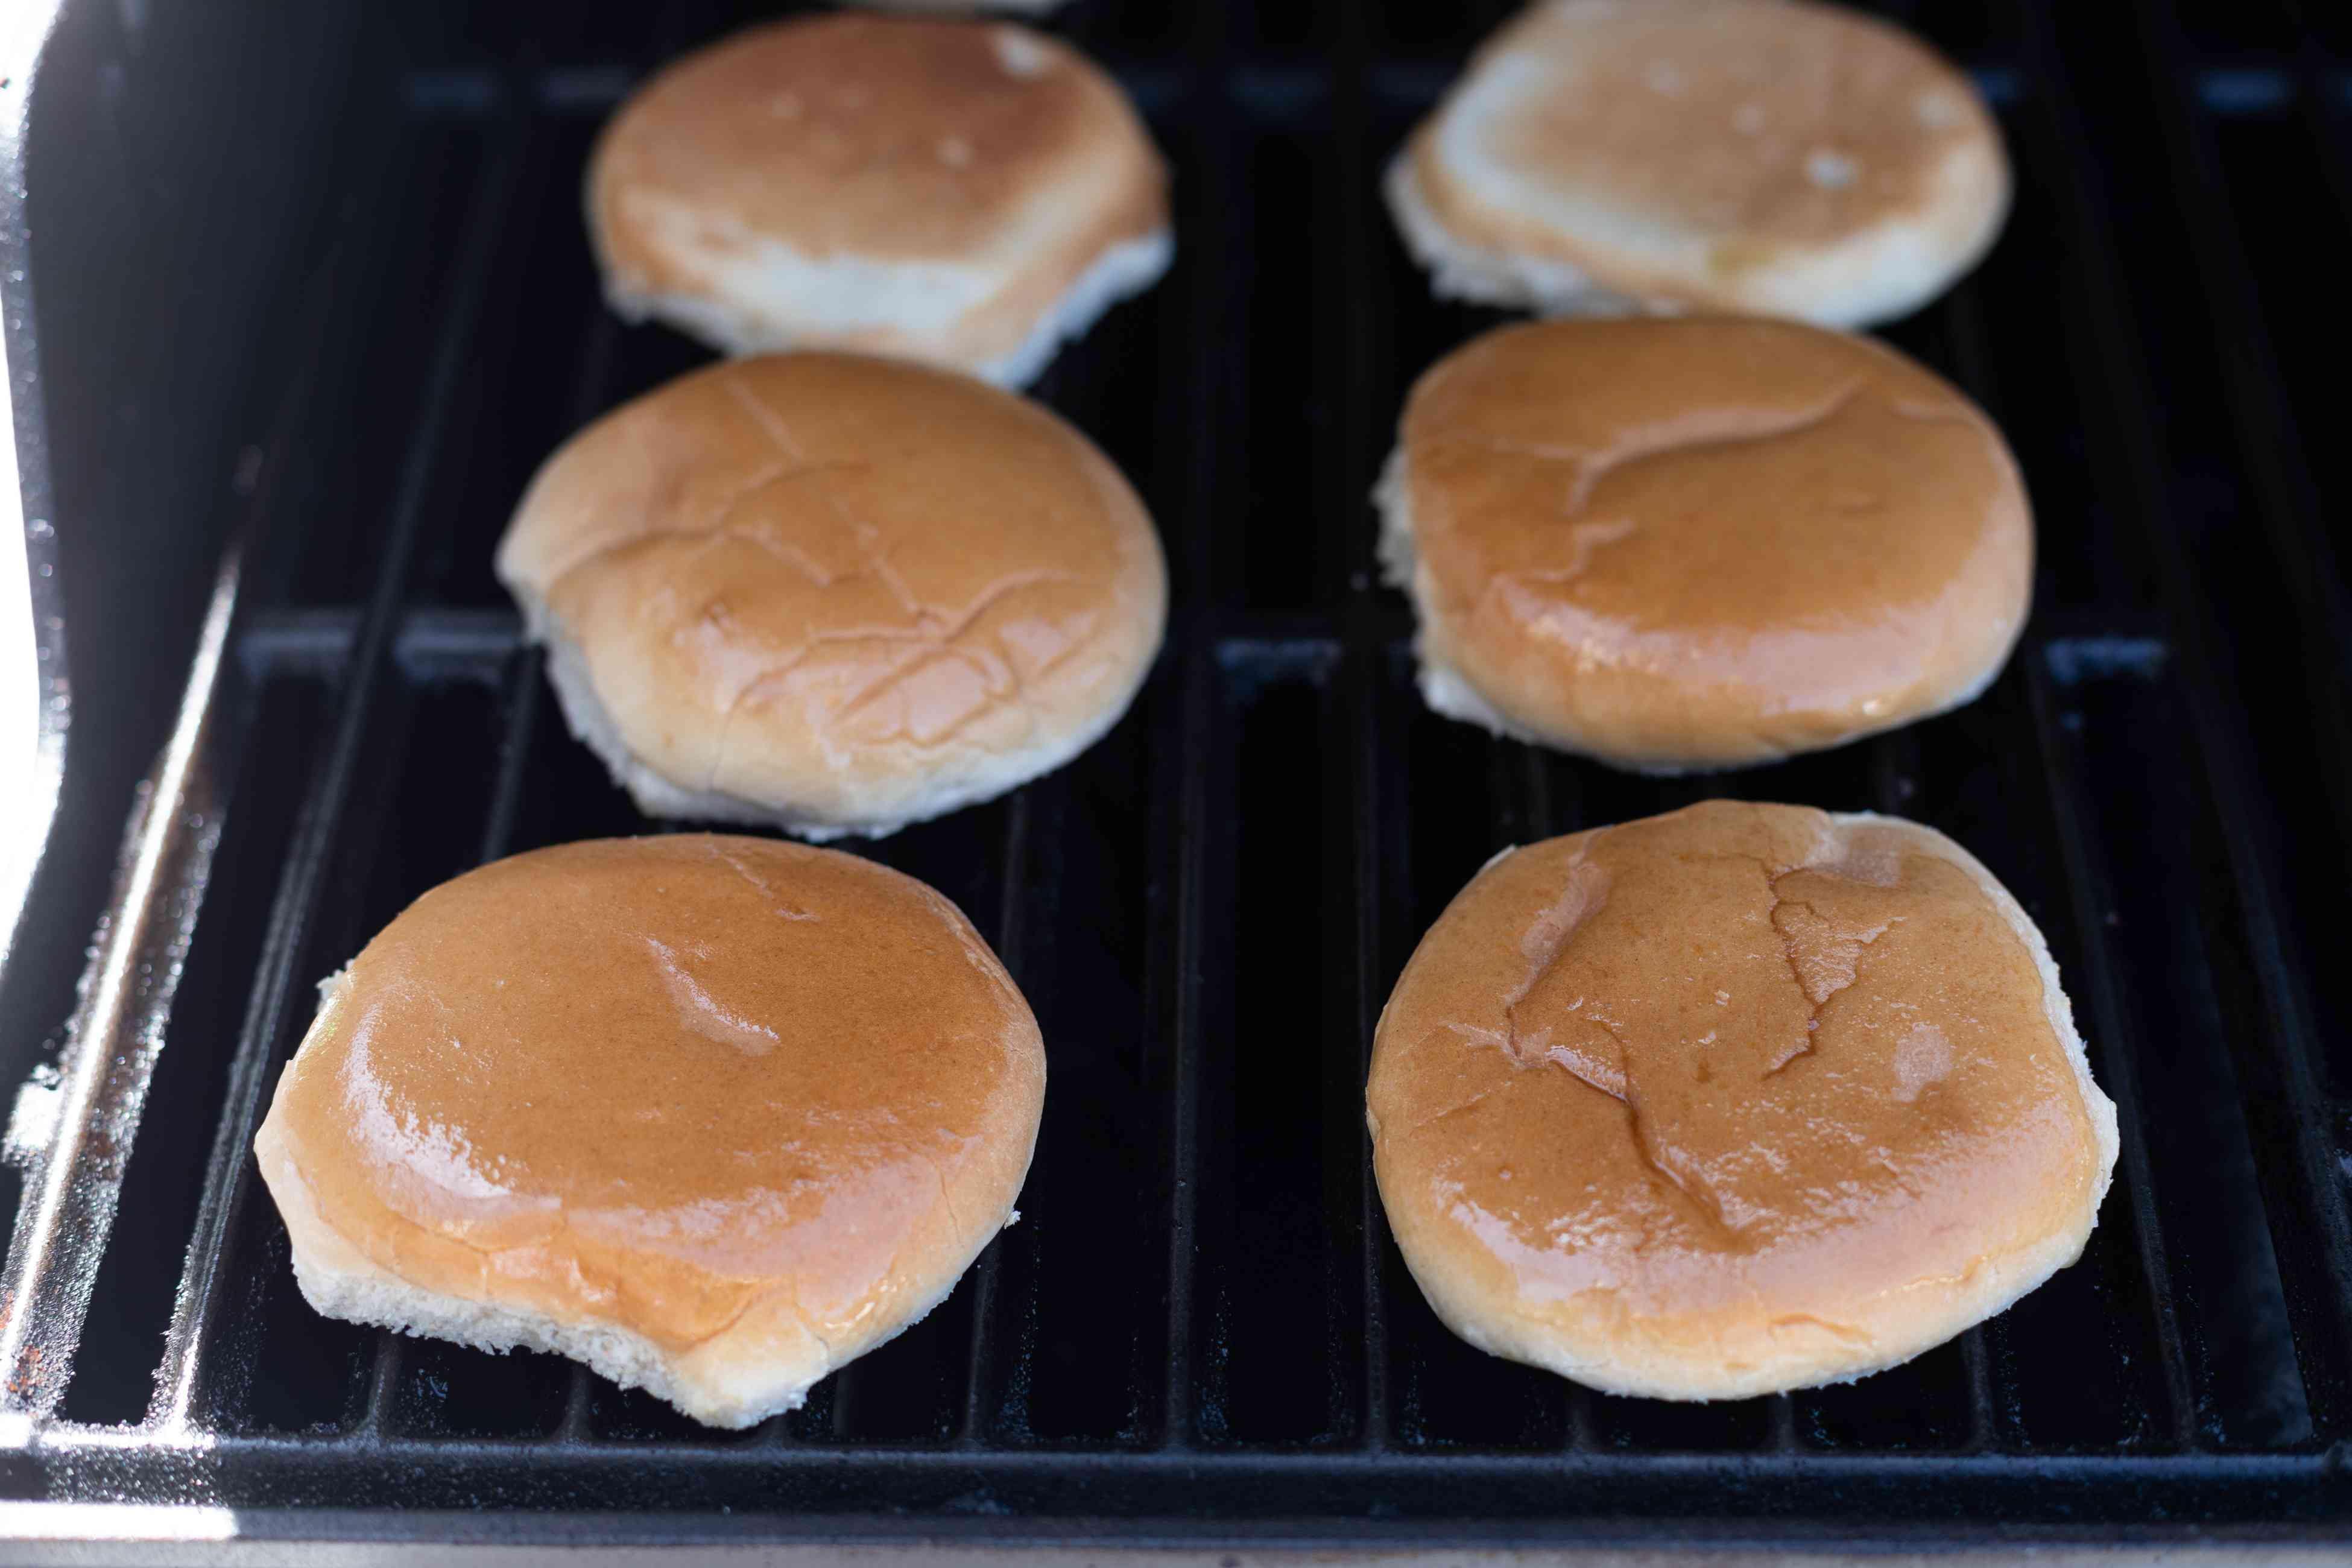 Toasting buns on the grill for mushroom swiss burgers.